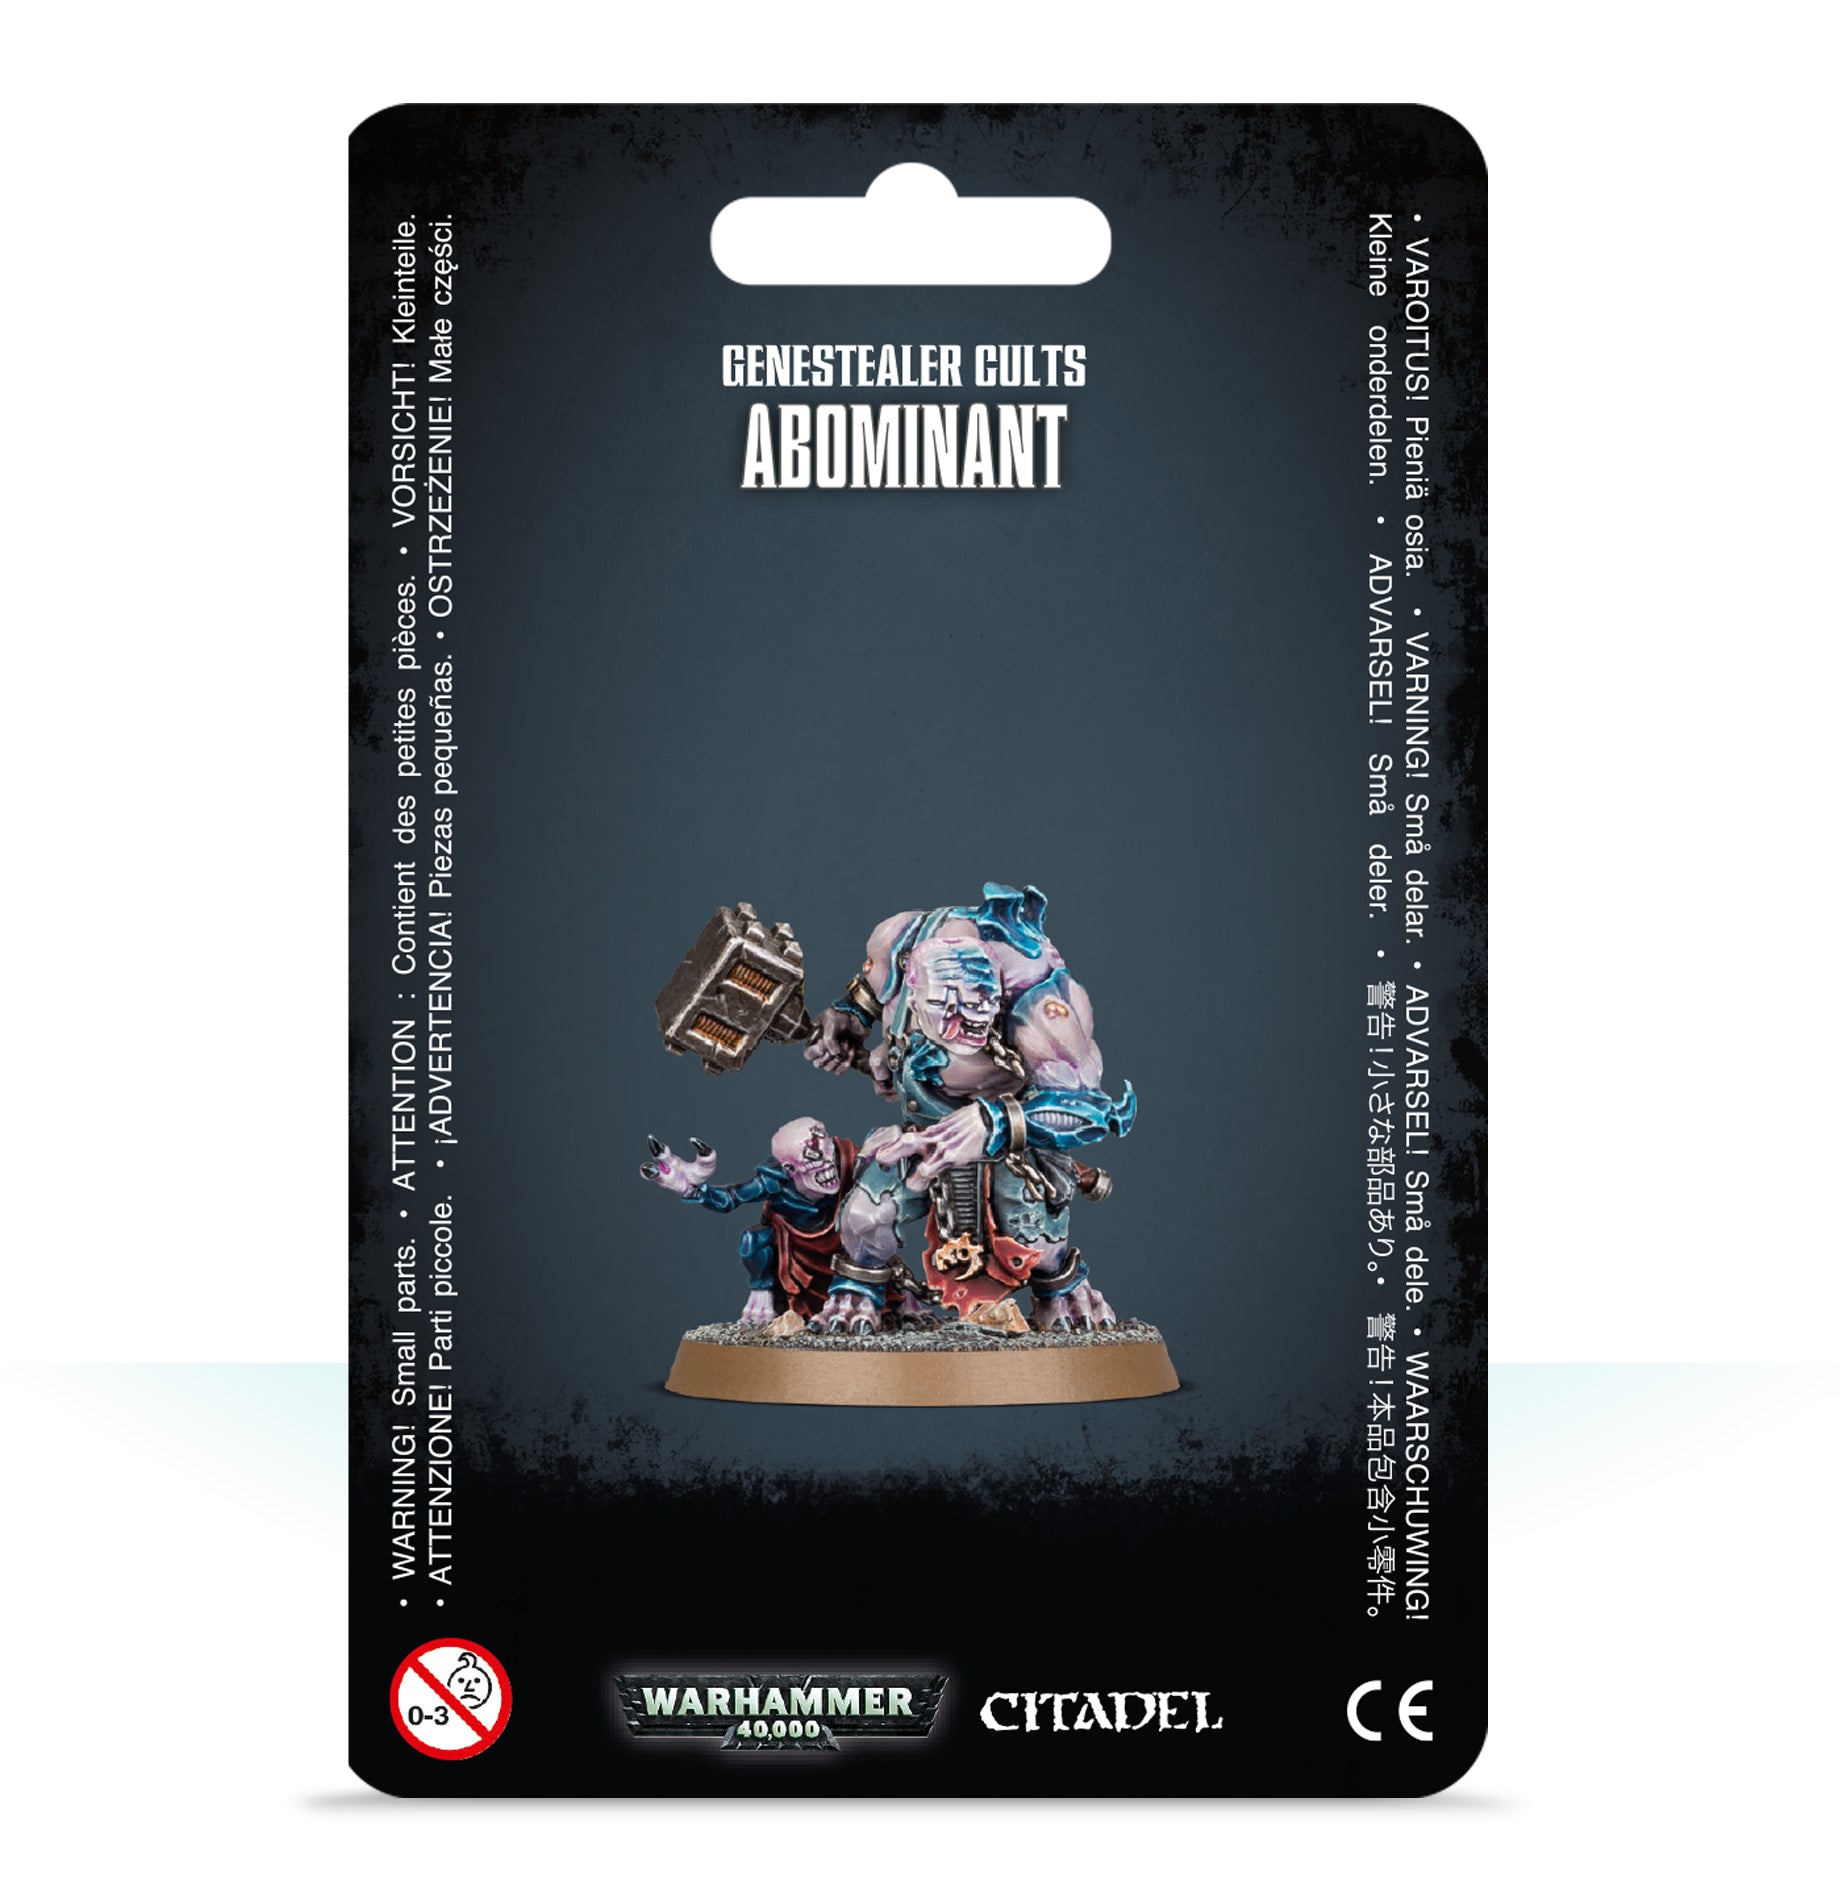 Genestealer Cult Abominant | Mythicos